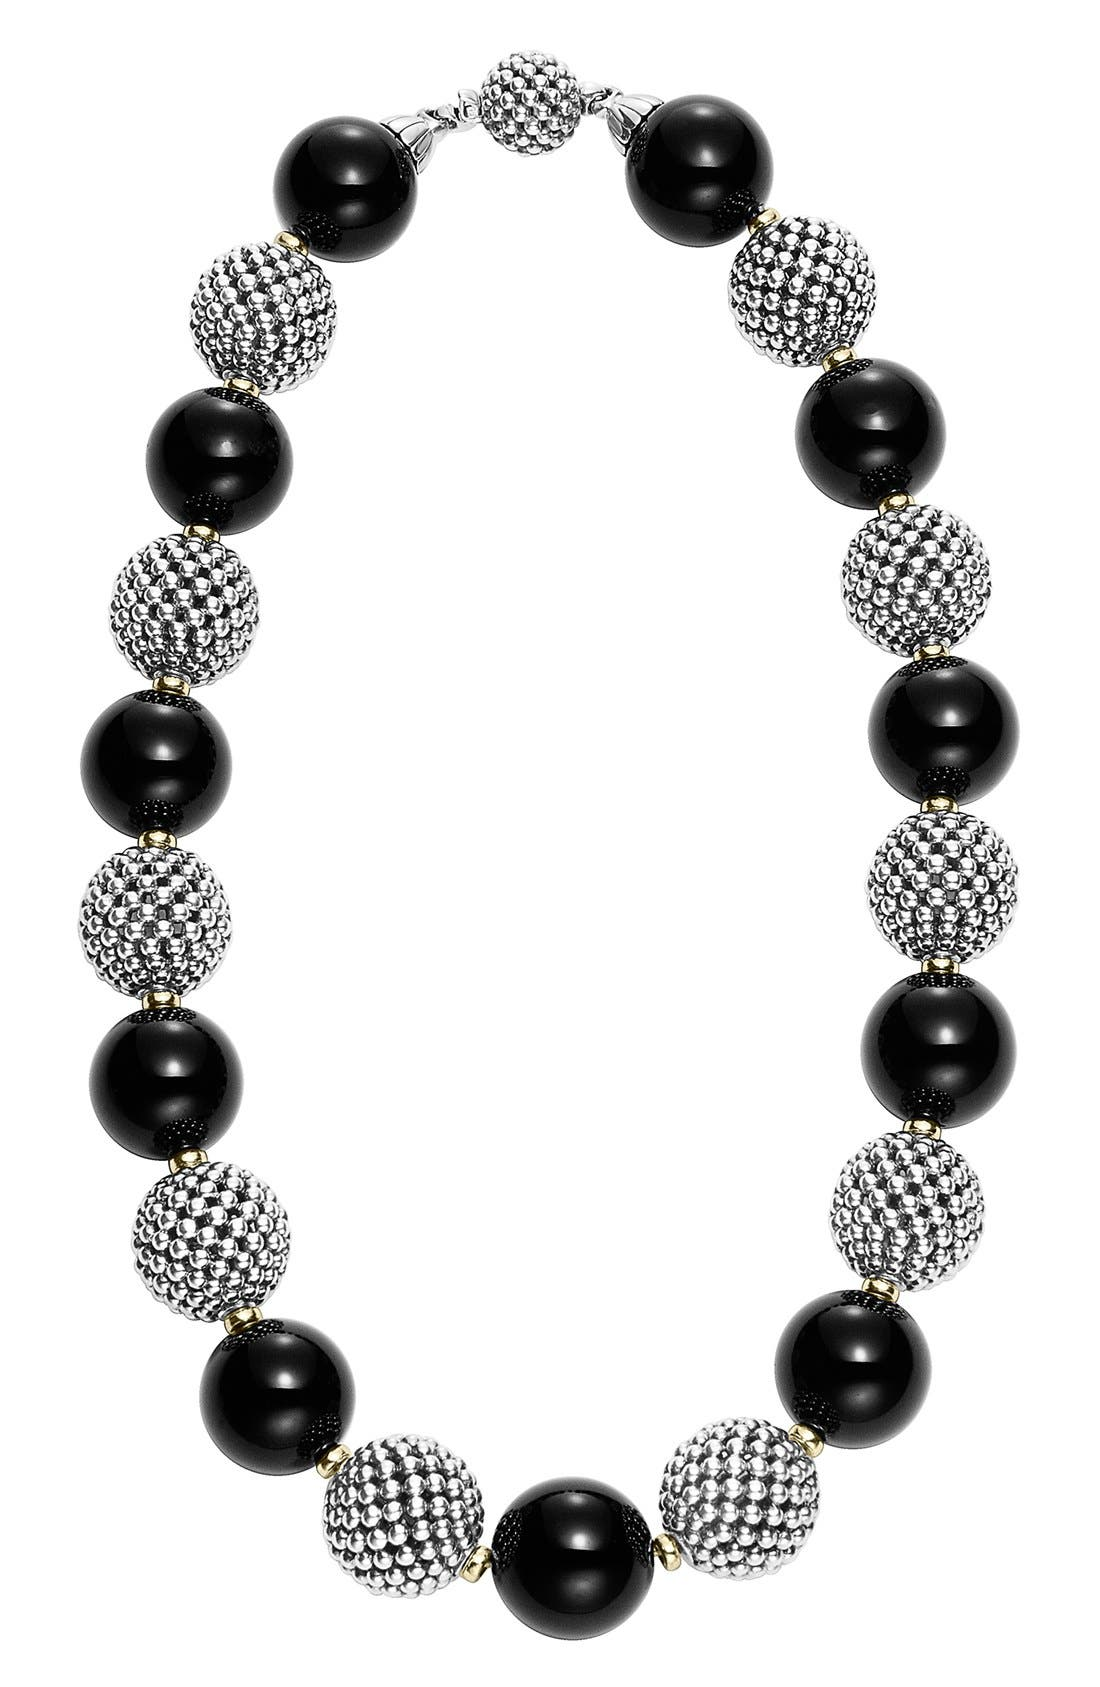 Alternate Image 1 Selected - LAGOS 'Black Caviar' Beaded Necklace